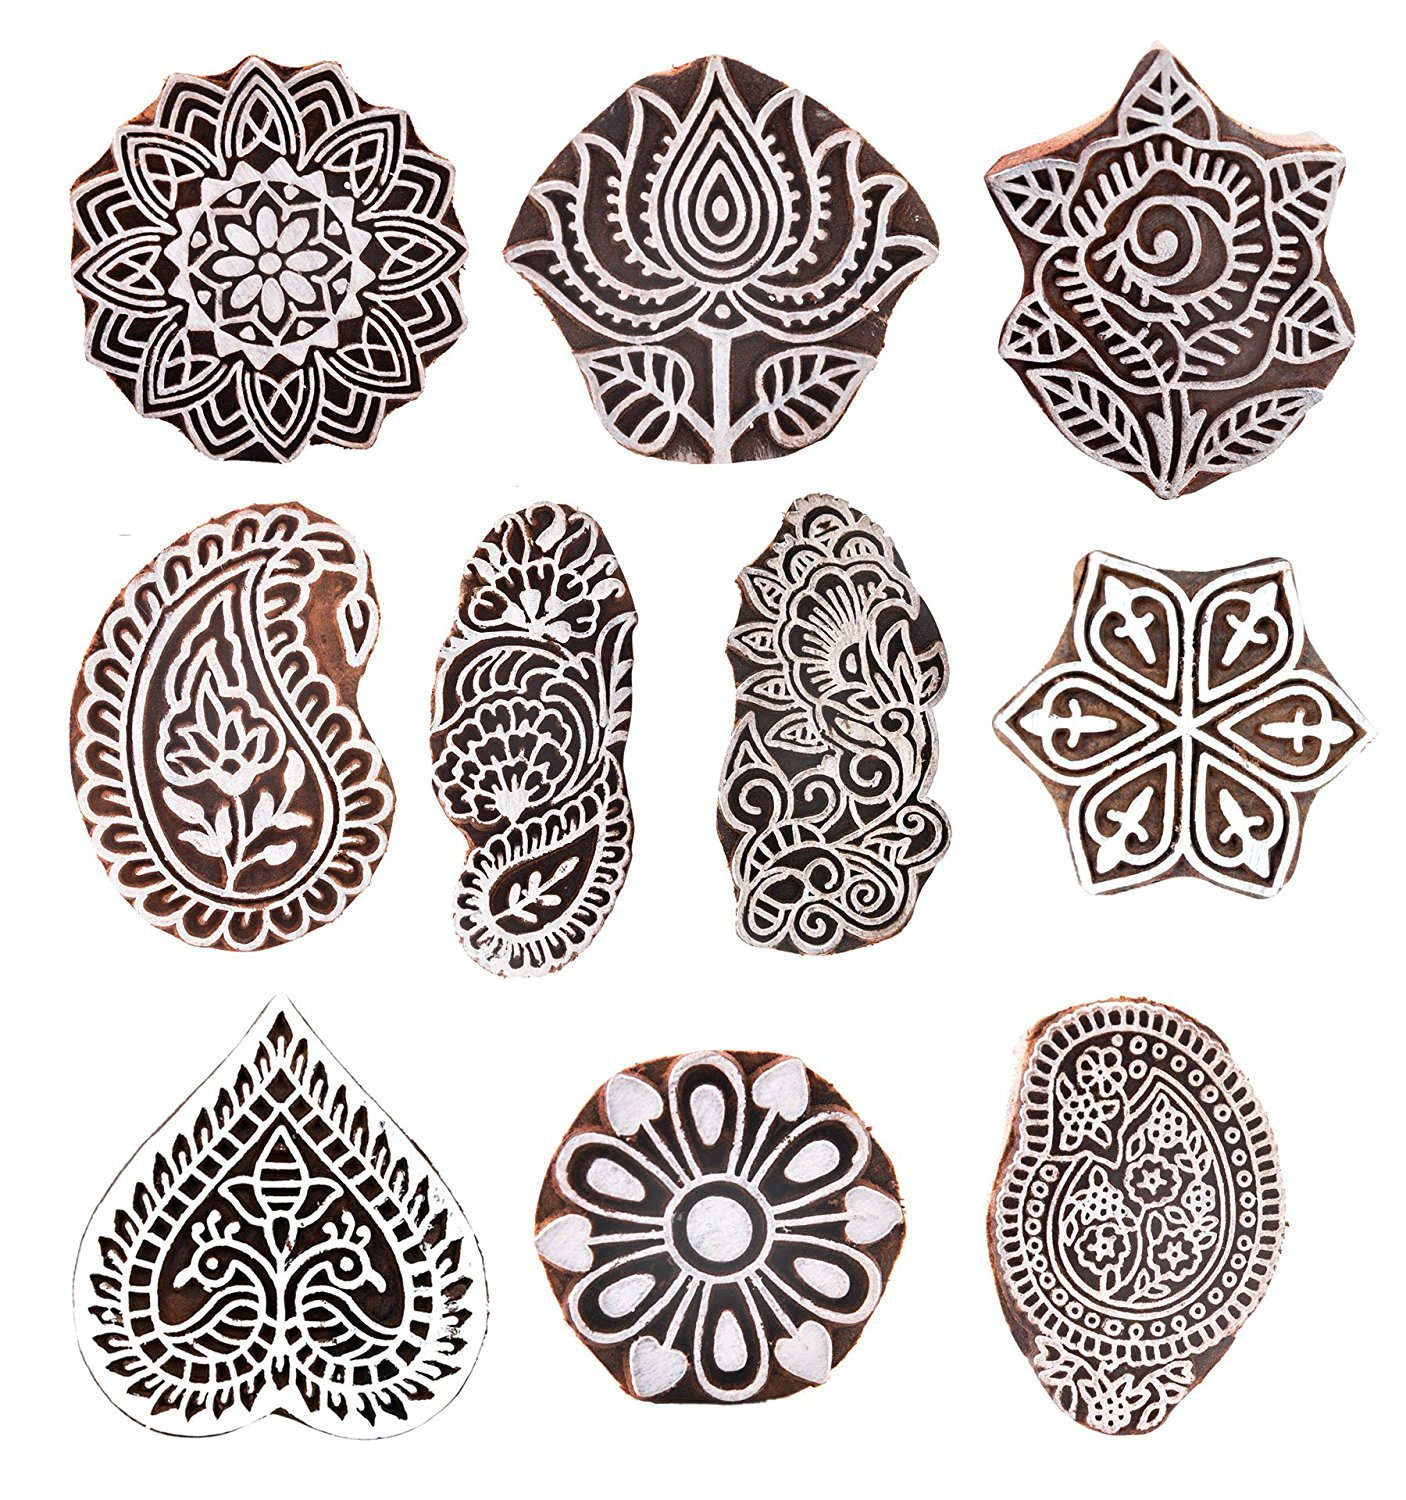 JGARTS Printing Stamps Mughal Design Wooden Blocks (Set of 10) Hand-Carved for Saree Border Making Pottery Crafts Textile Printing Handmade INDIA